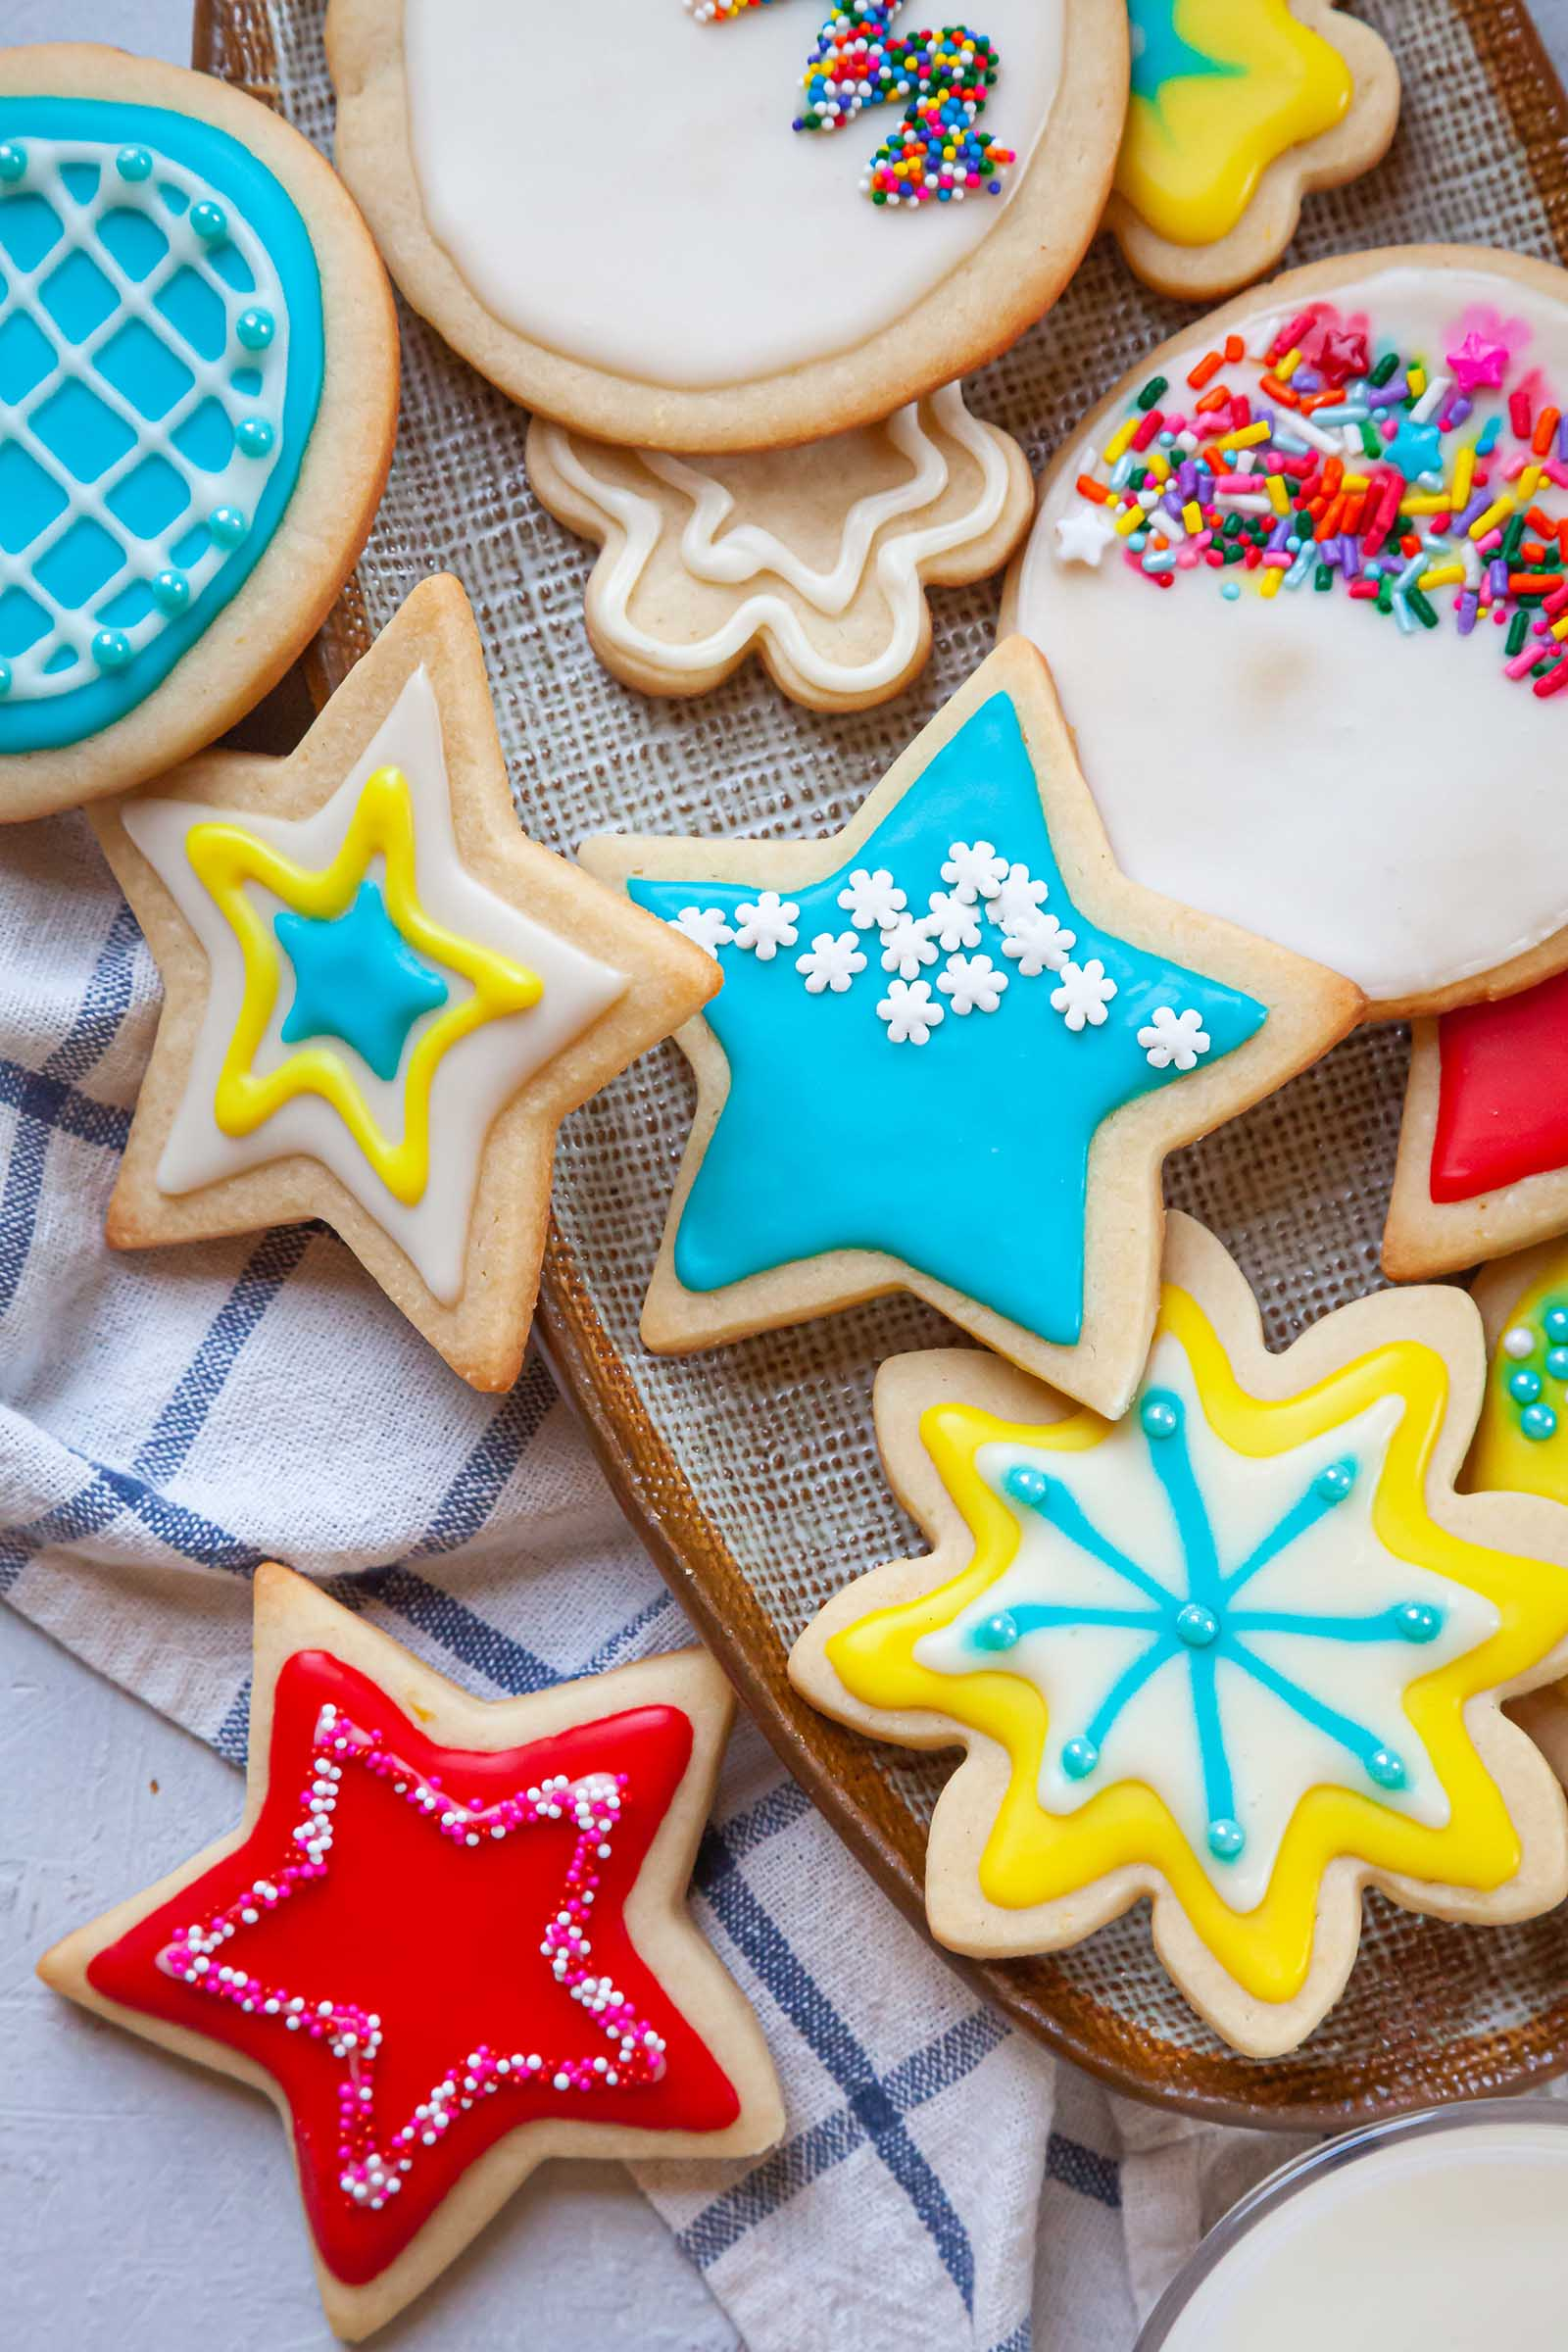 A platter of brightly decorated sugar cookies using an Easy Royal Icing Recipe.